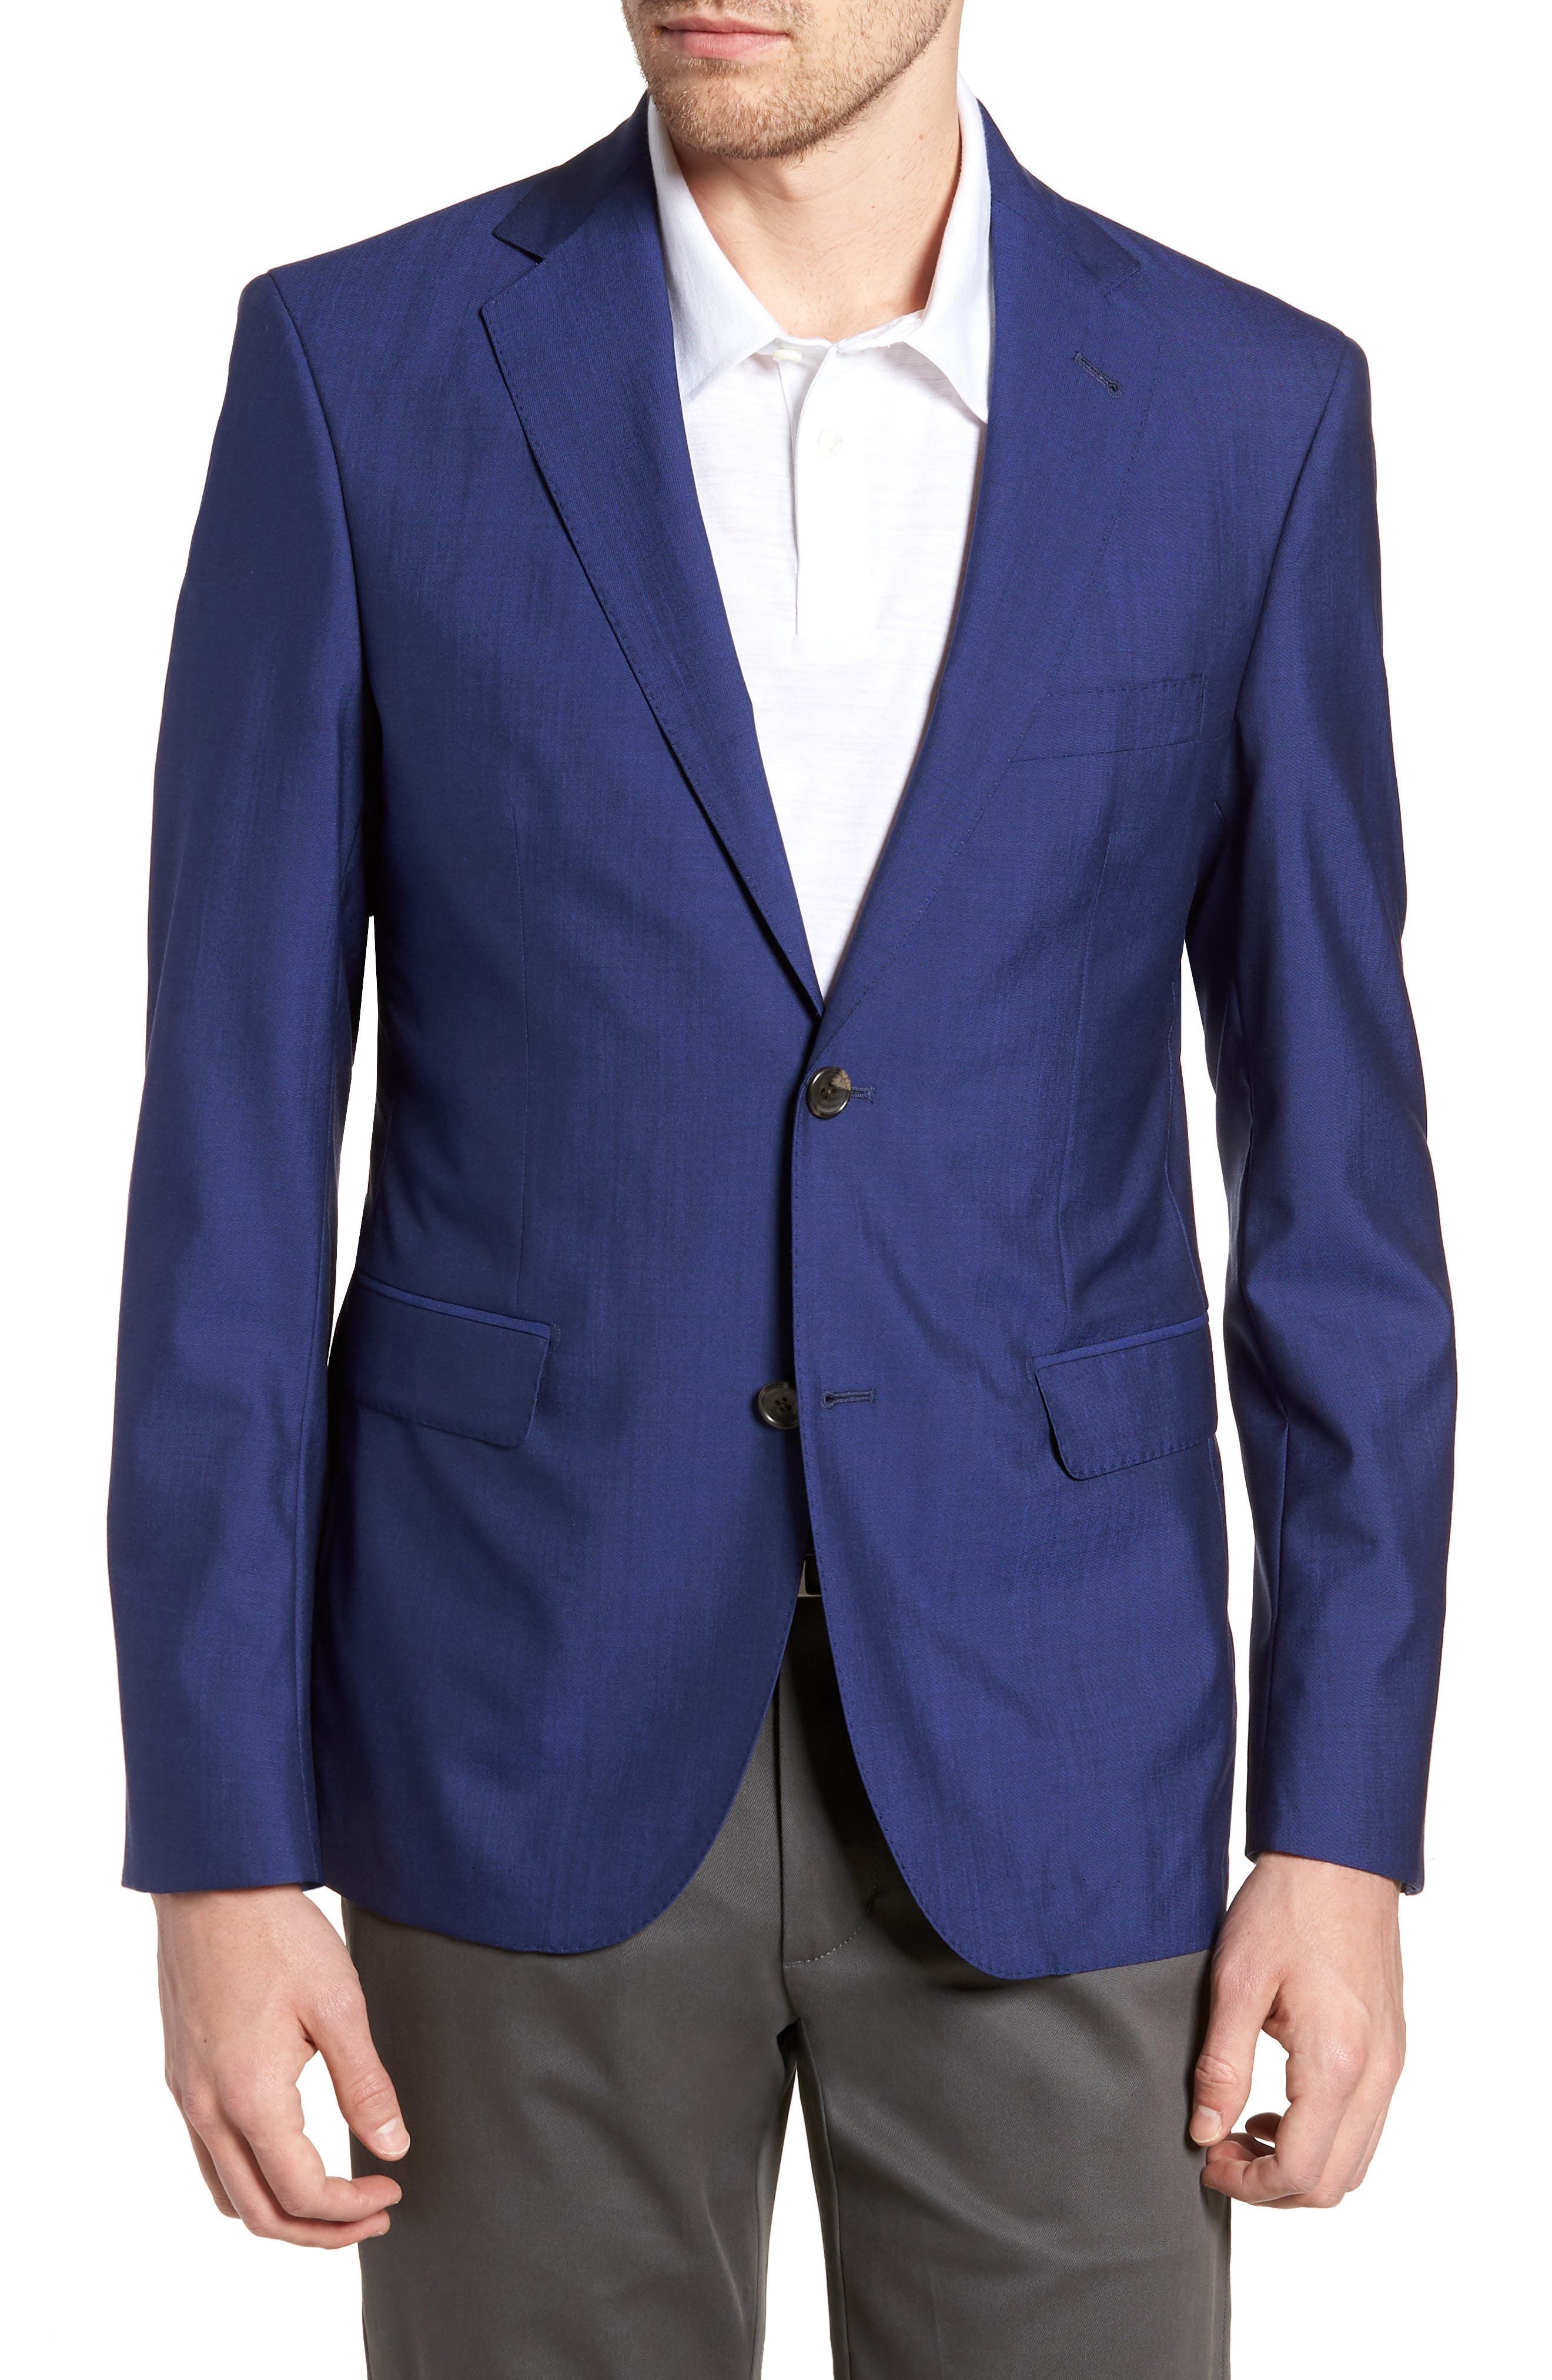 Shelby Trim Fit Wool Blazer,                             Main thumbnail 1, color,                             High Blue